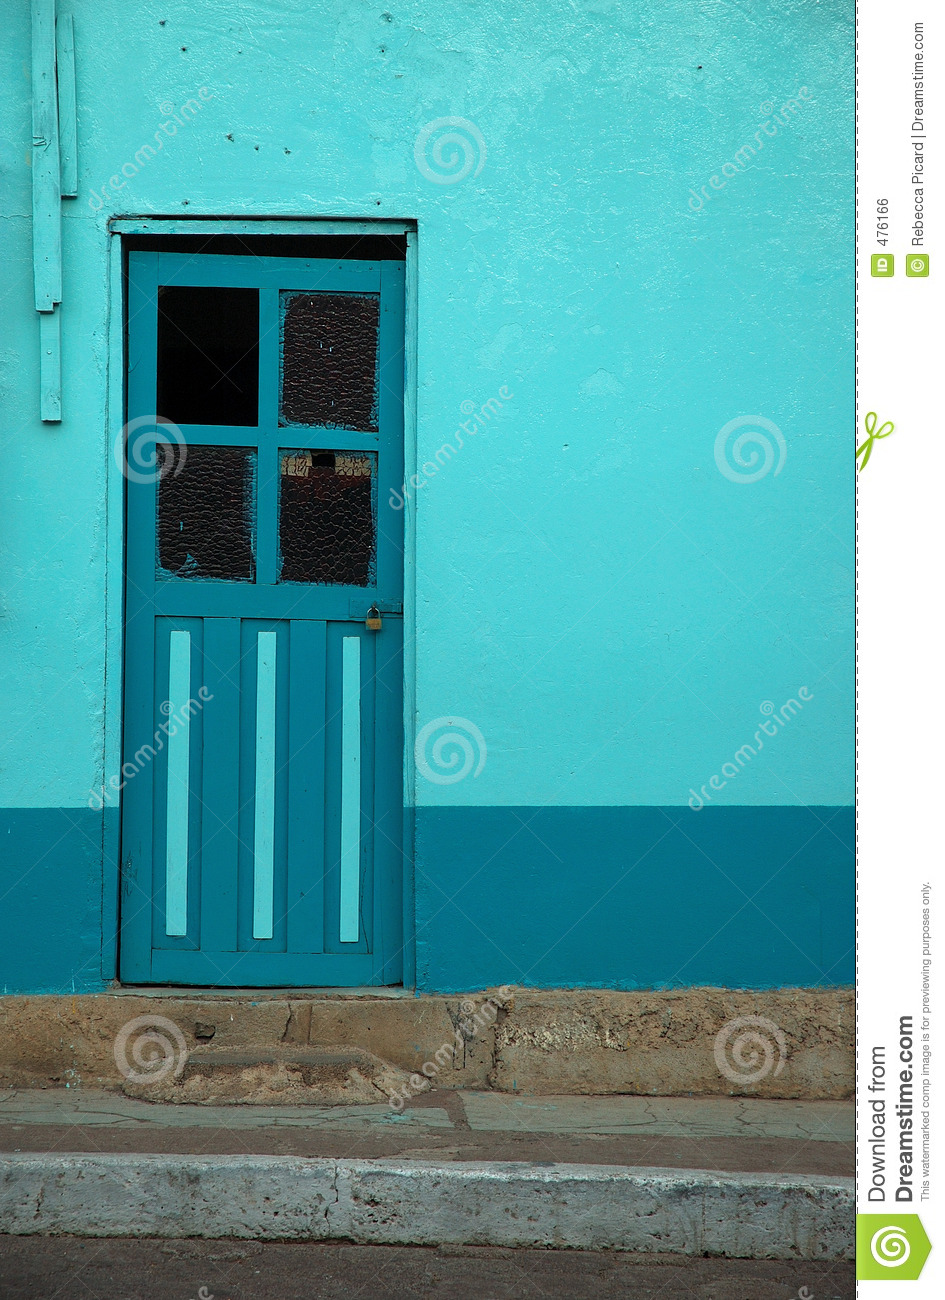 turquoise door stock photo. image of bench, street, vacation - 476166